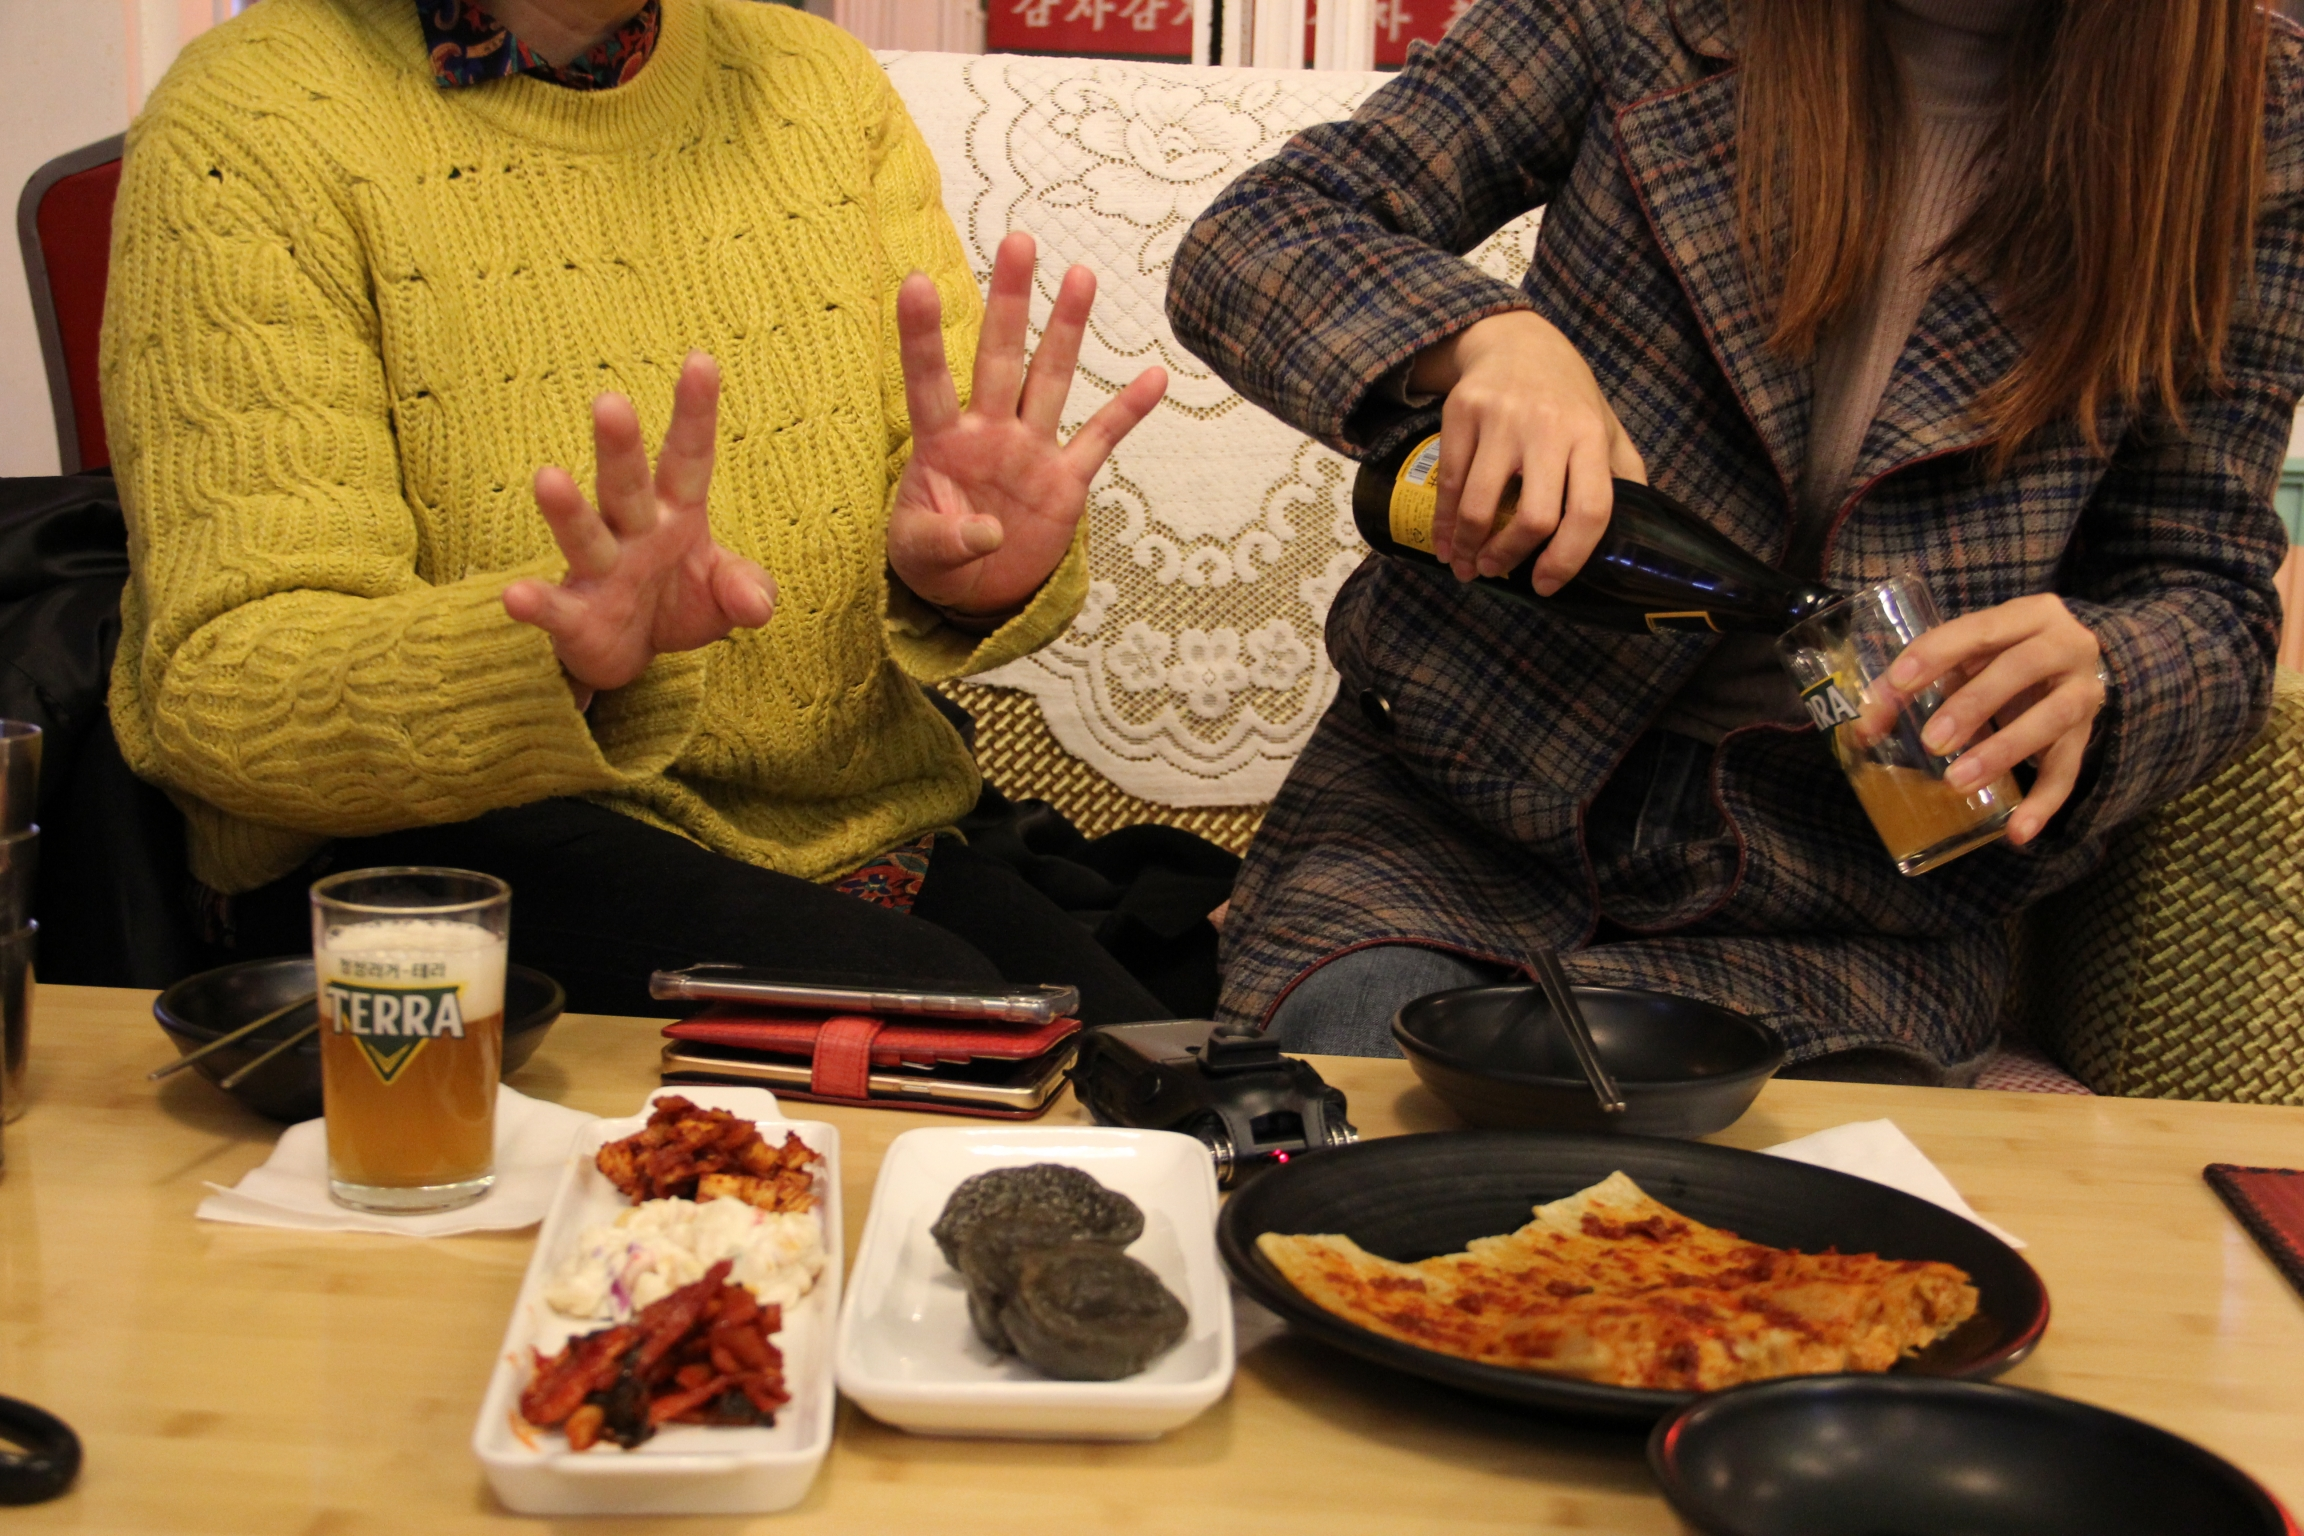 Kim Eun-joo (right) does Han (left) the courtesy of pouring a glass of beer before they begin eating dinner.